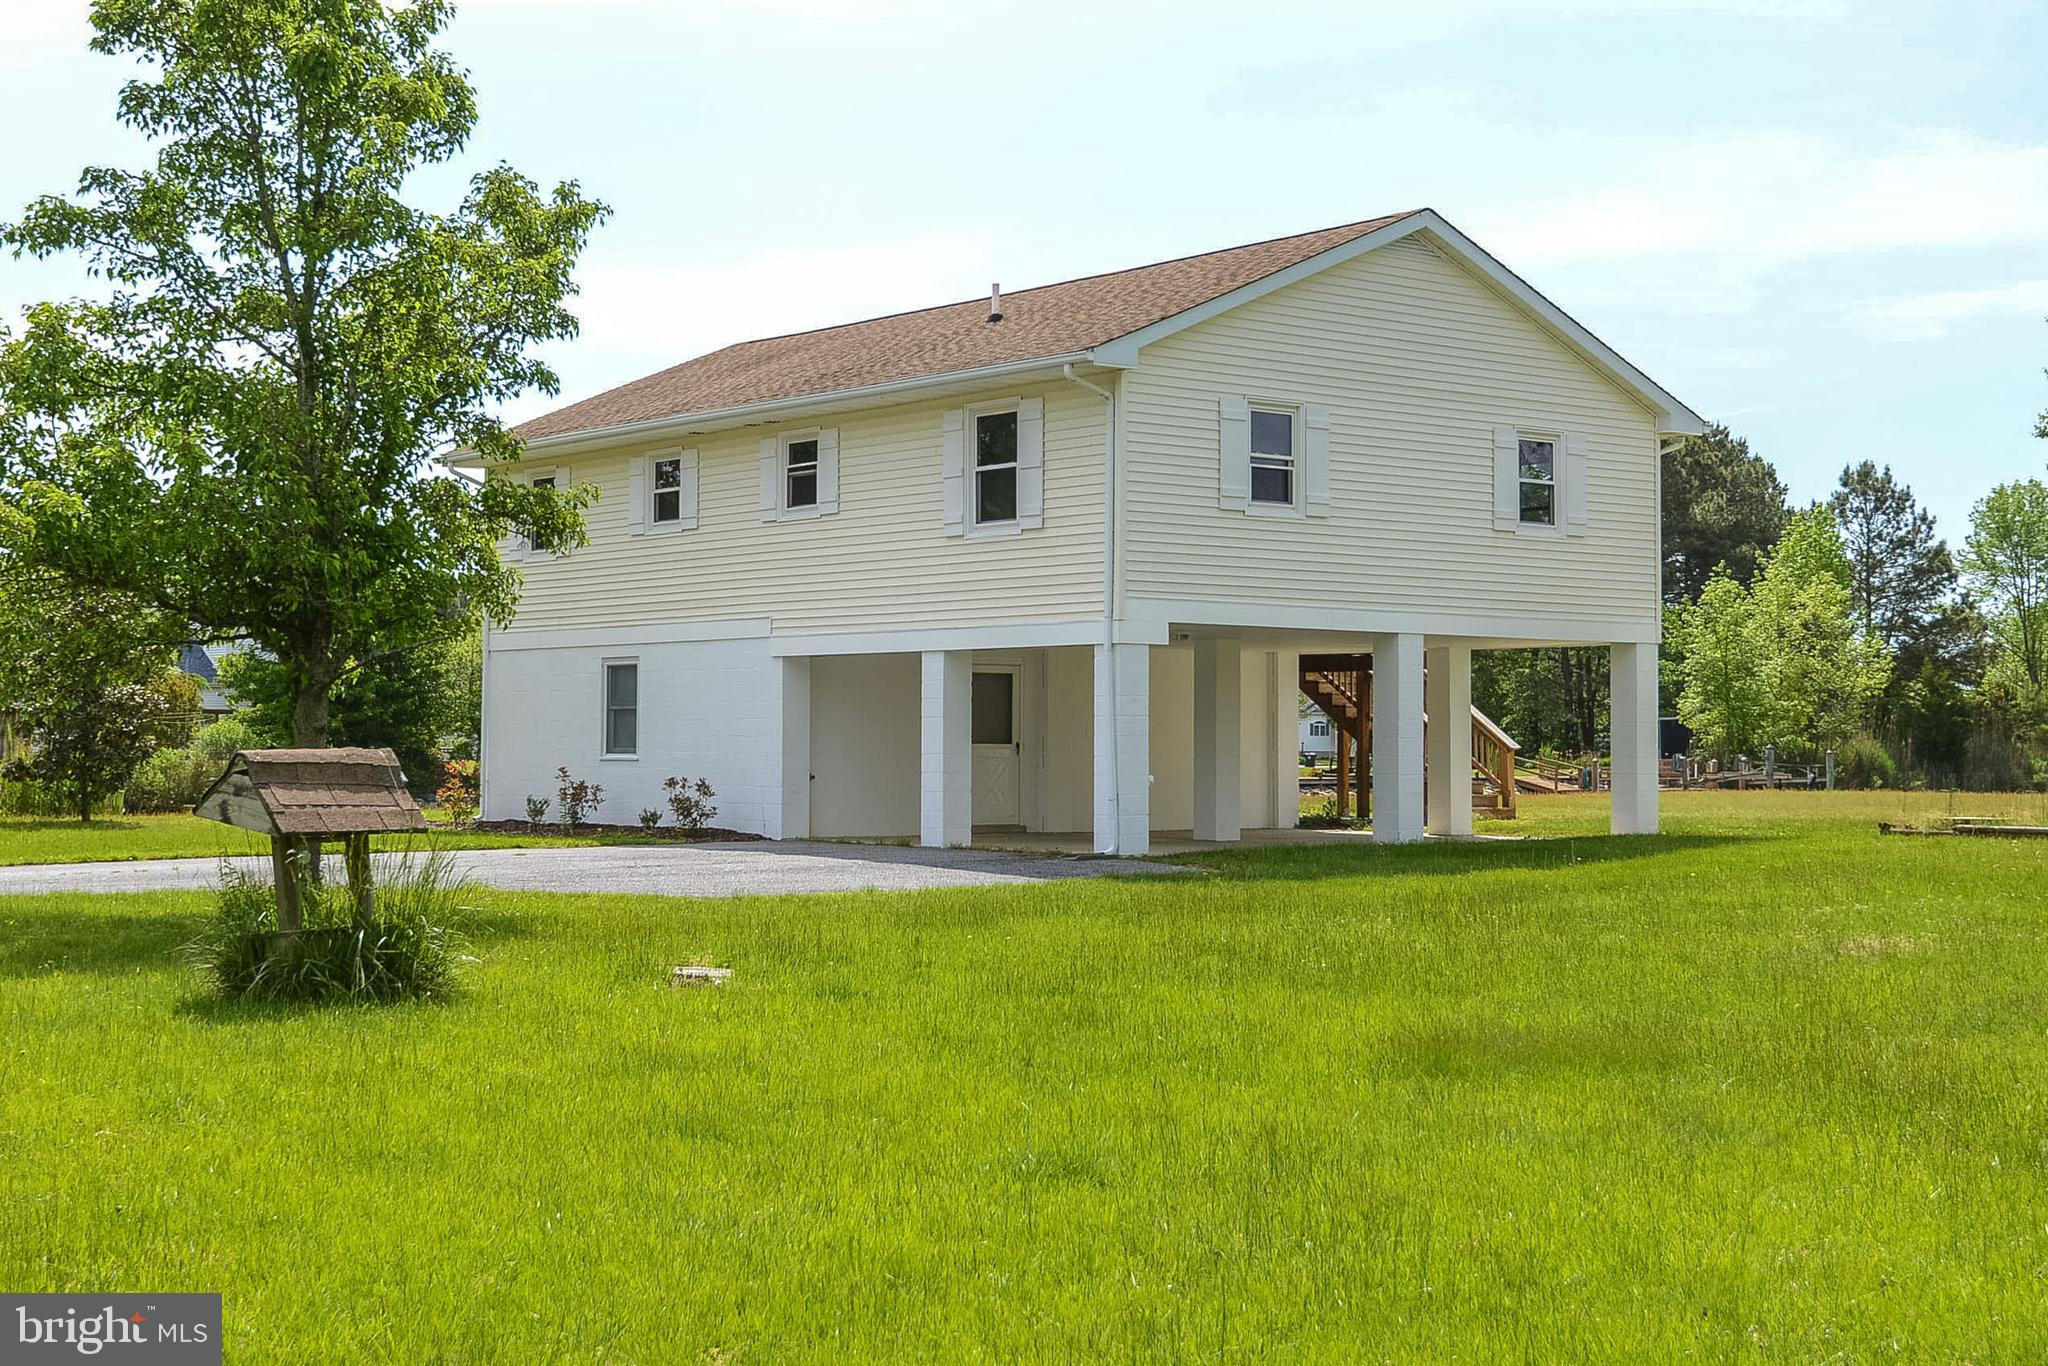 13367 COVE LANDING ROAD, BISHOPVILLE, MD 21813